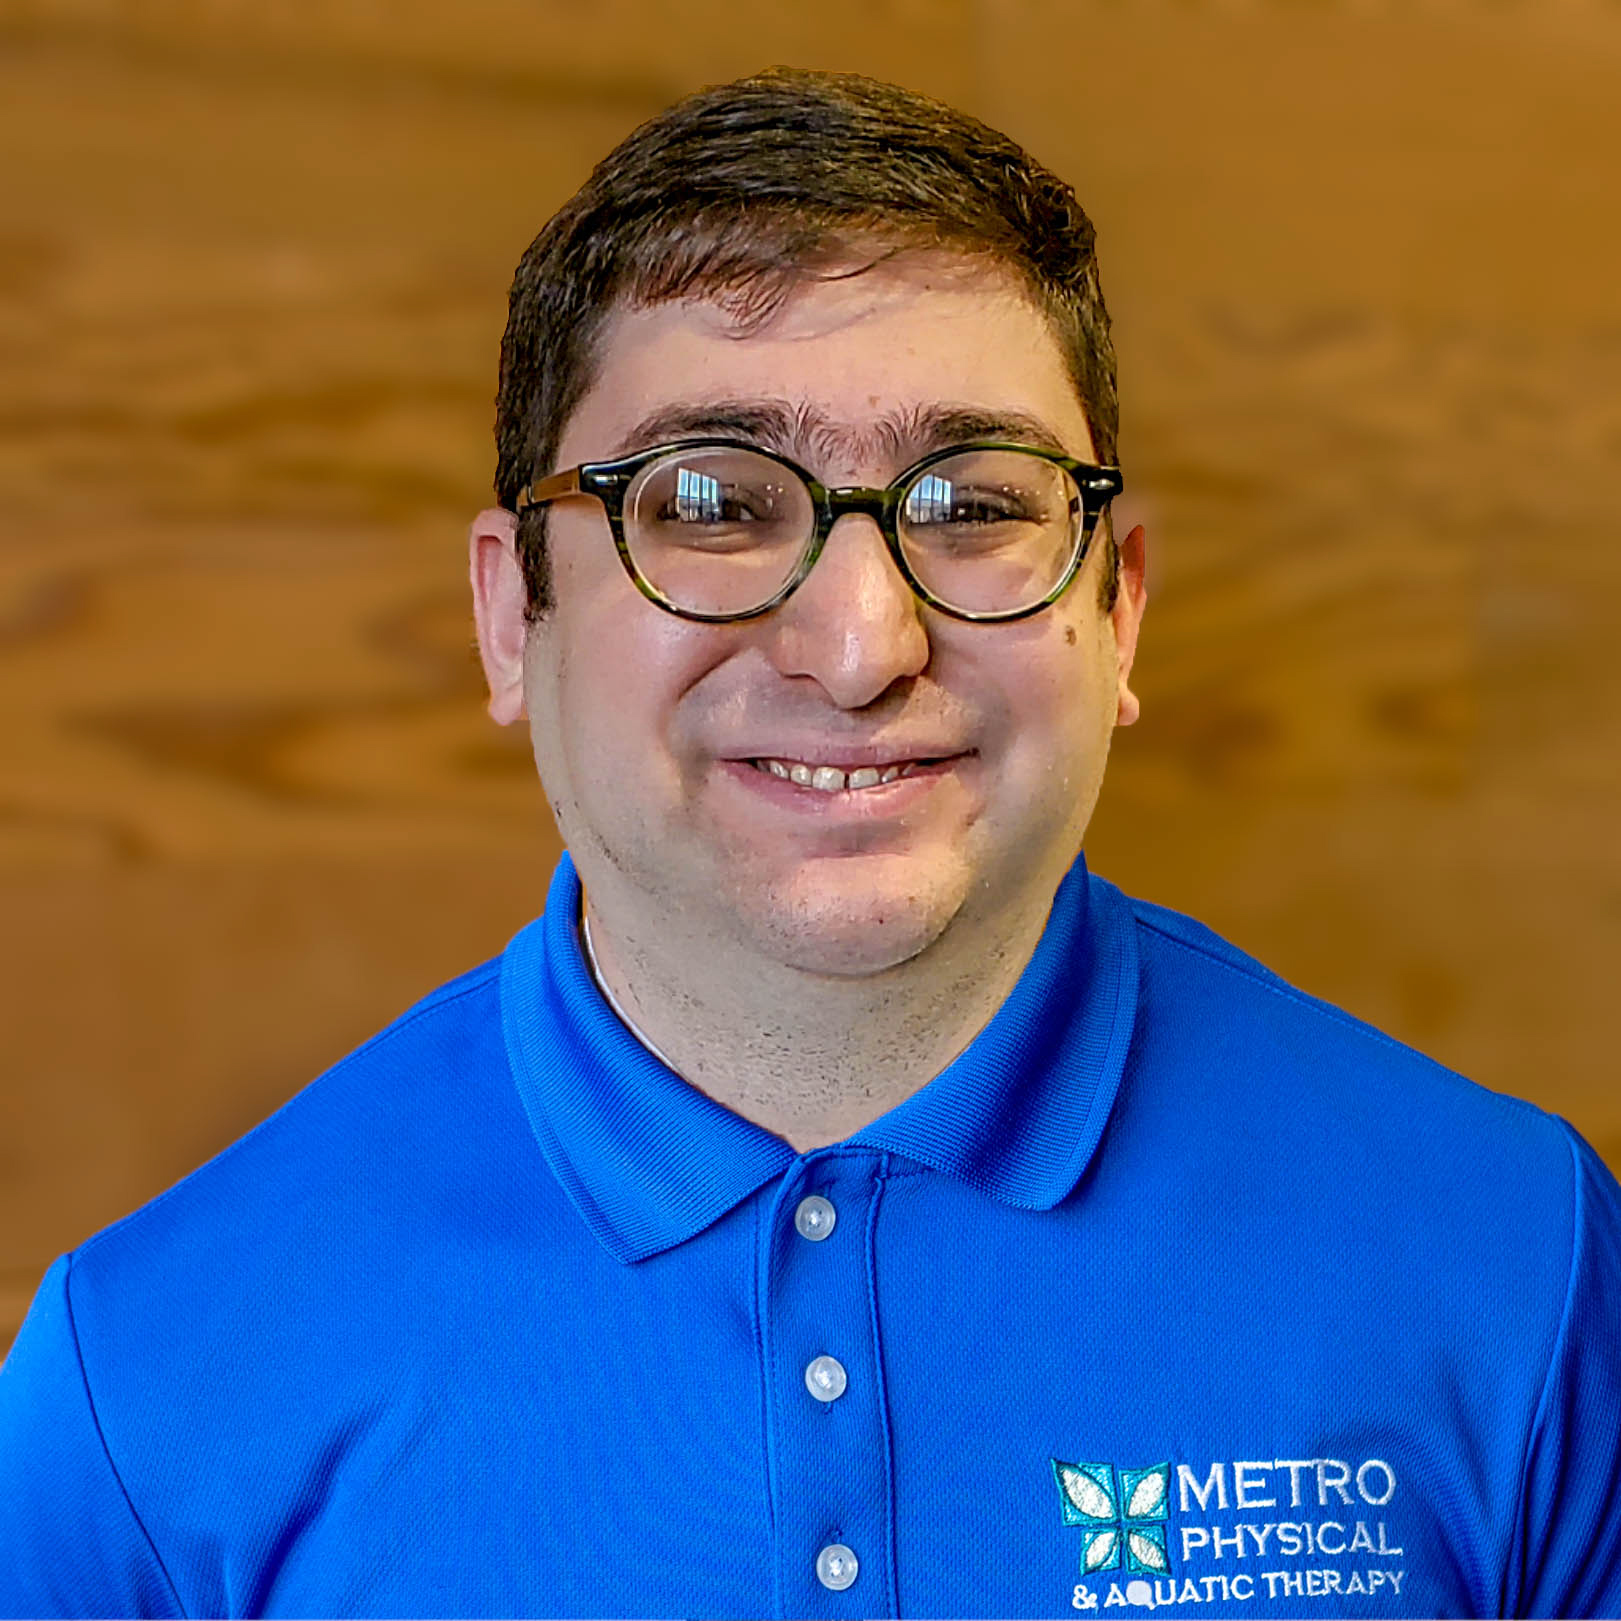 Mordechai Aron is a Physical Therapist at Metro Physical Therapy Roslyn